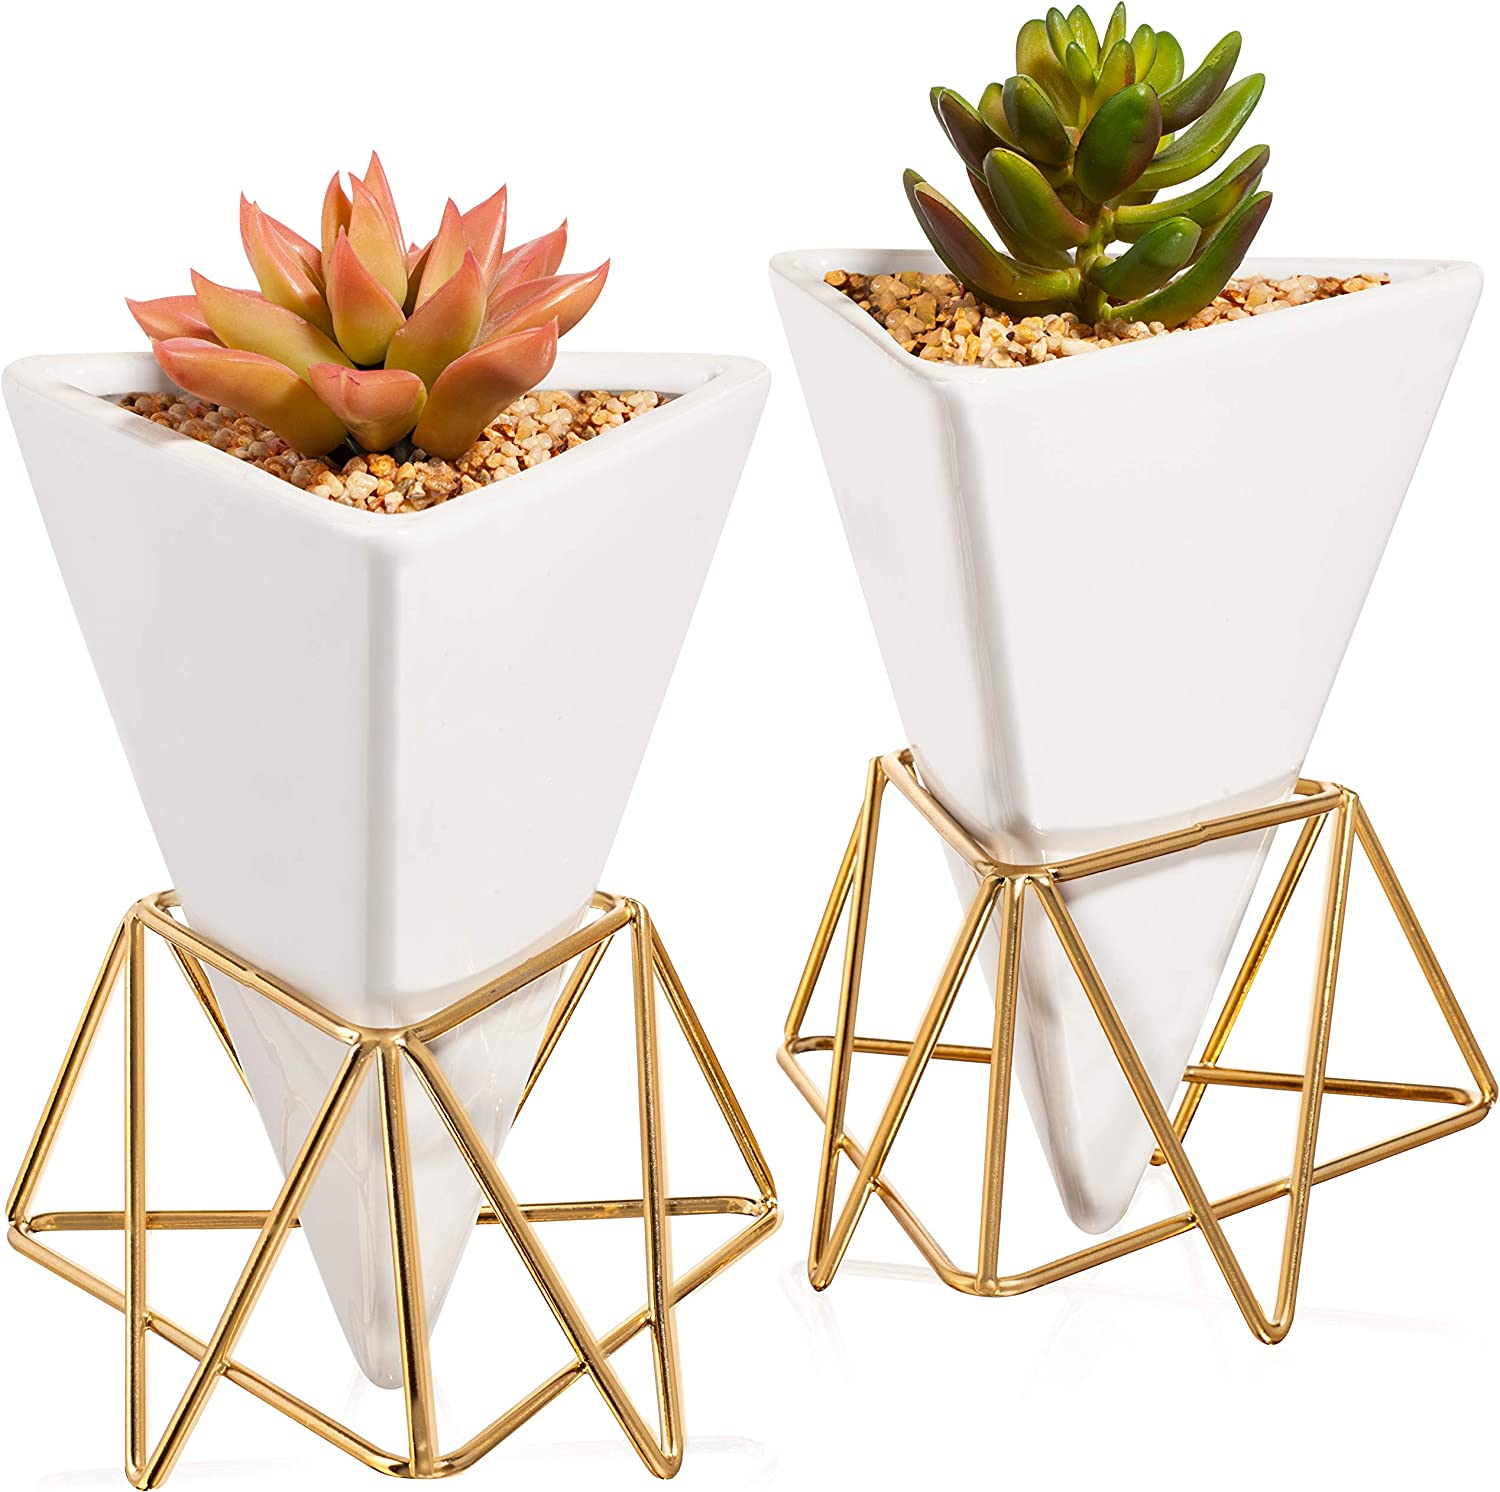 Succulent Wall Planter Geometric - Triangle White/Gold Ceramic Decor Set of 2 - Modern Desktop Stand with Vase for Live Plant - Drainage for Air Plants, Cactus, and herbs - Dual Use - Hanging or Table